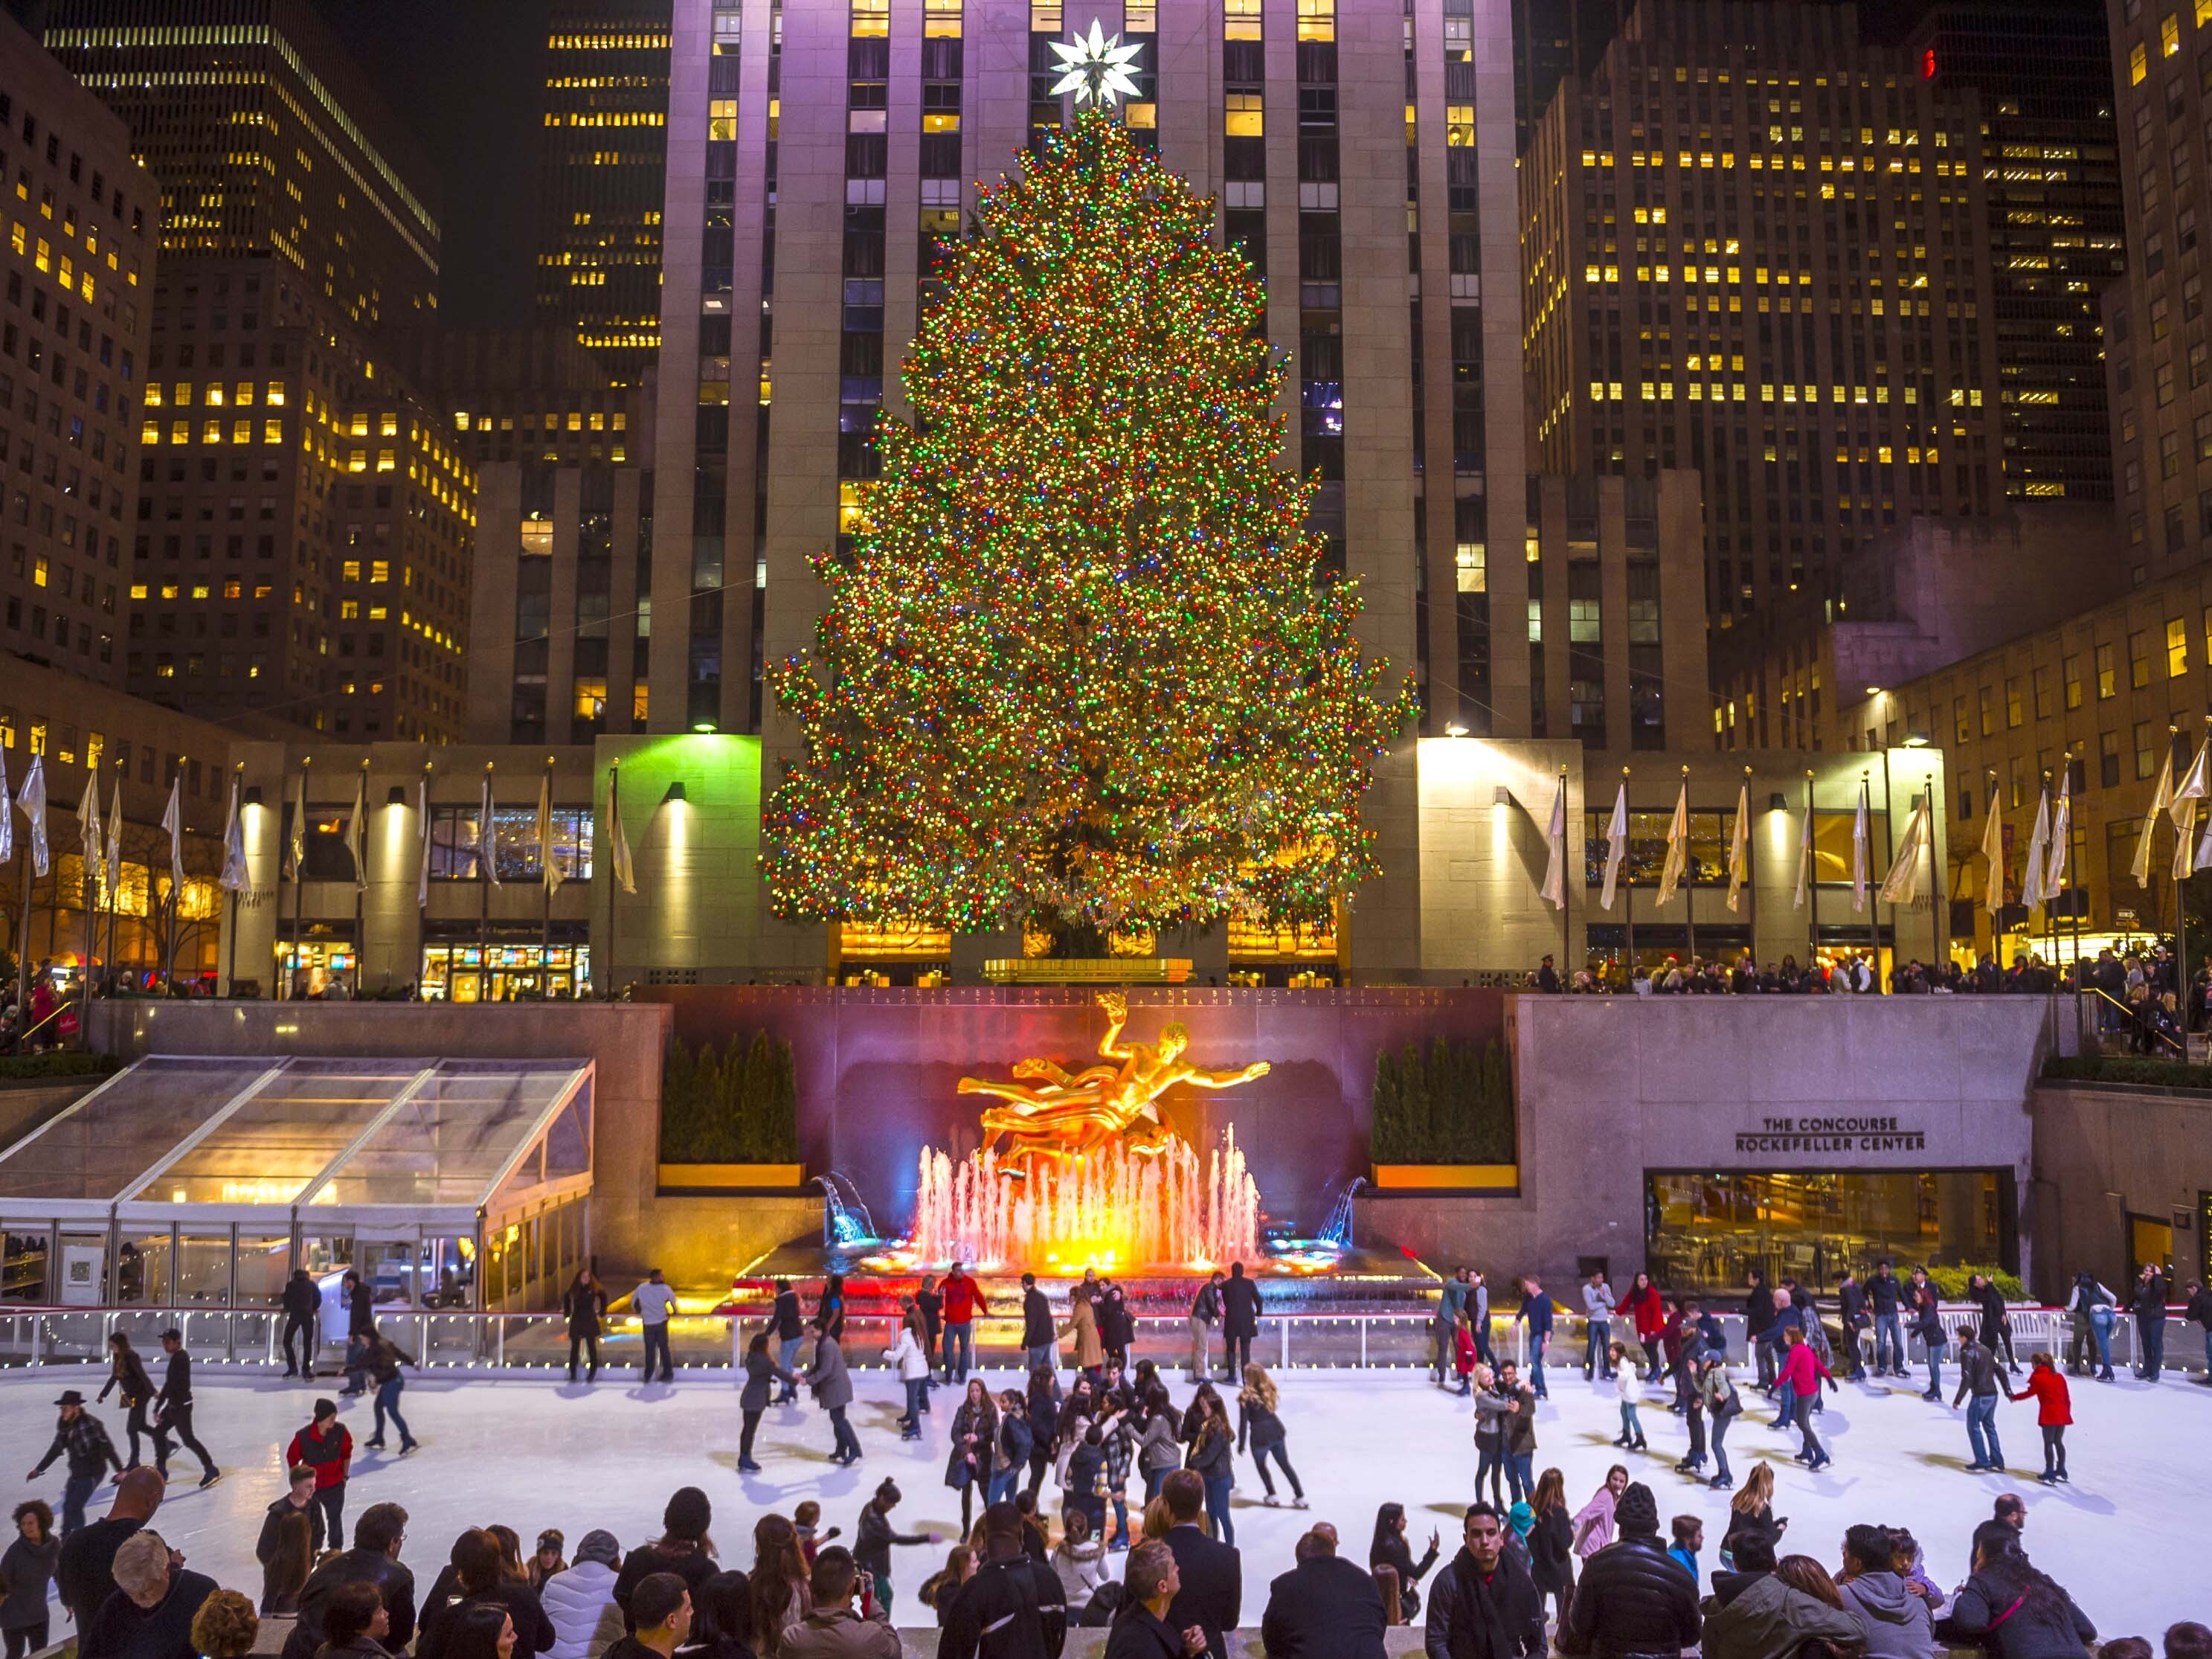 Christmas Events Nyc 2020 NYC Events In December 2020 Including Holiday Markets And More